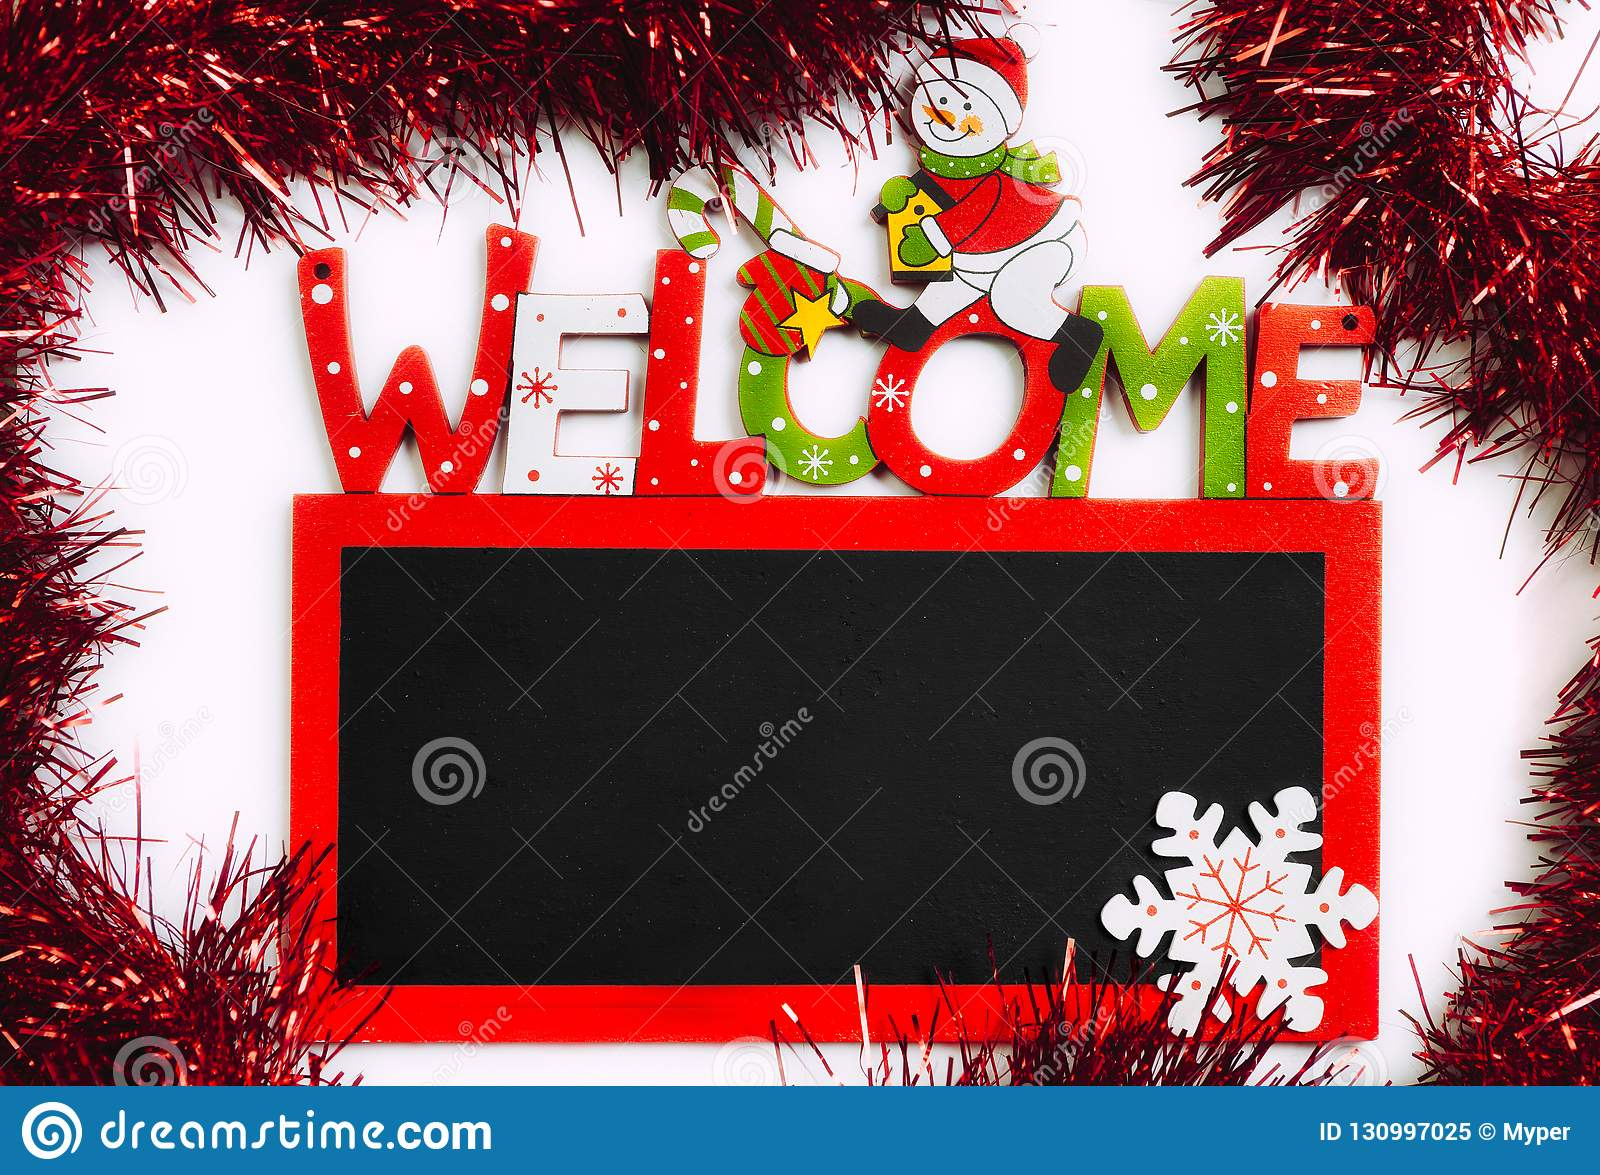 Welcome Christmas.Christmas Welcome Black Board With Red Ribbon Stock Image